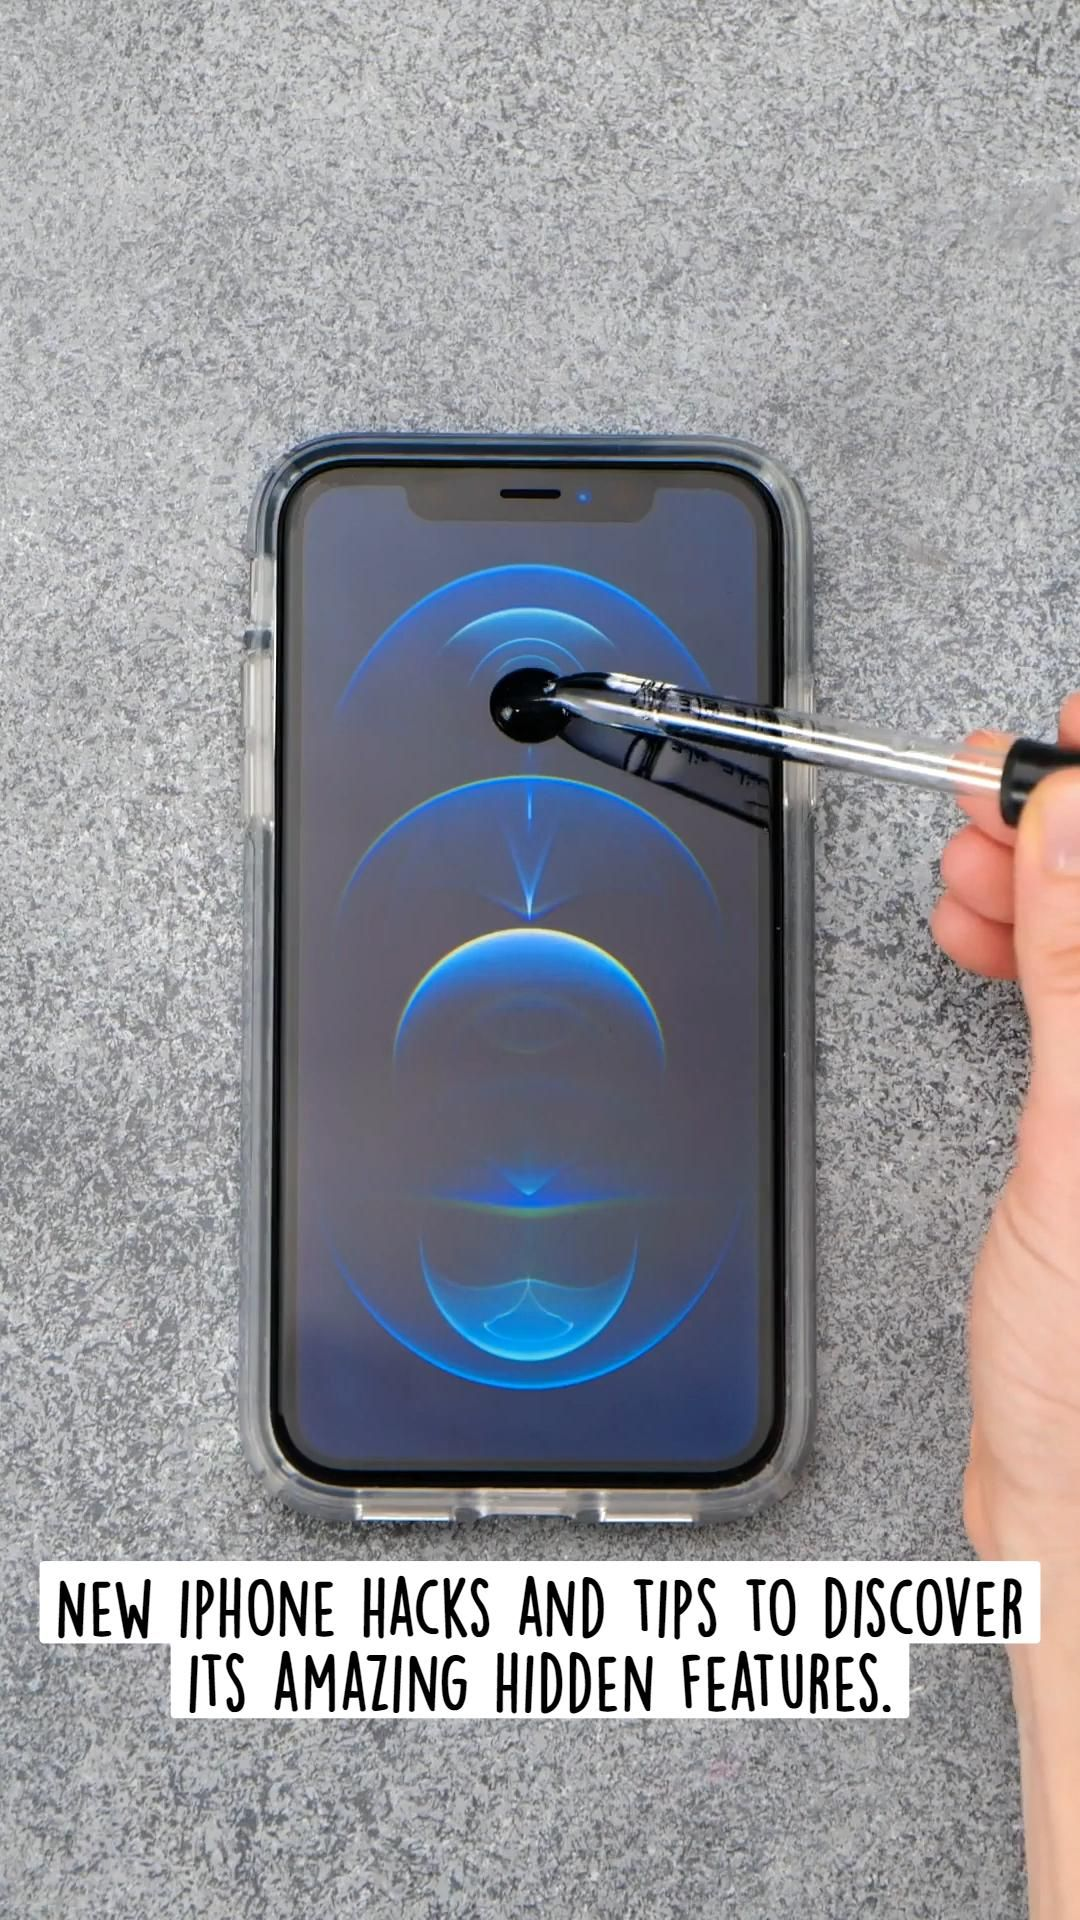 New iphone hacks and tips to discover its amazing hidden features.